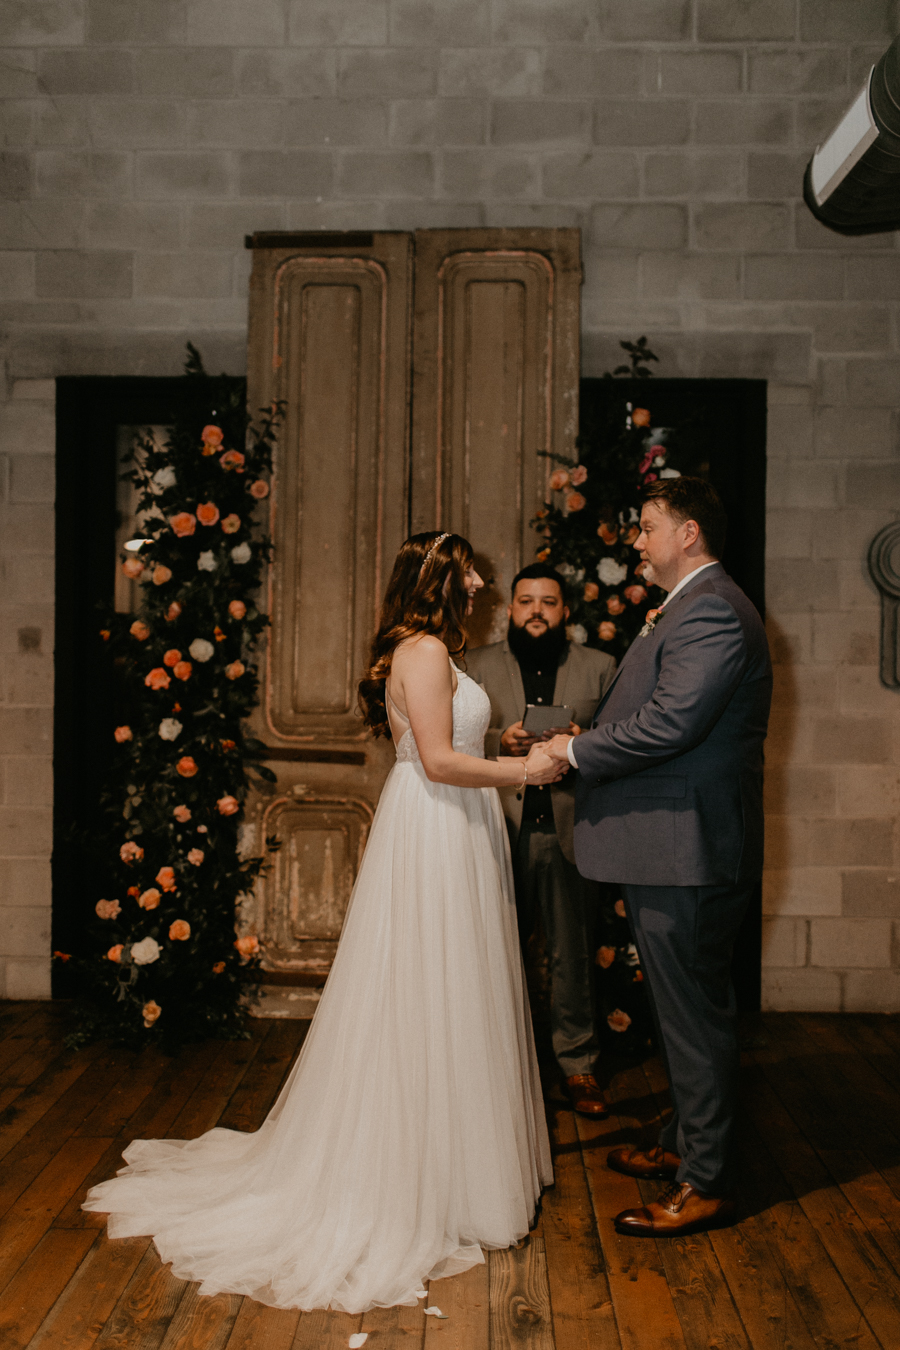 Stephanie And Kent Bailey Tampa Florida Romantic Wedding At Coppertail Brewery in Ybor Florist Fire BHLDN Mis En Place Ibex String Quartet Let Them Eat Cake -46.jpg